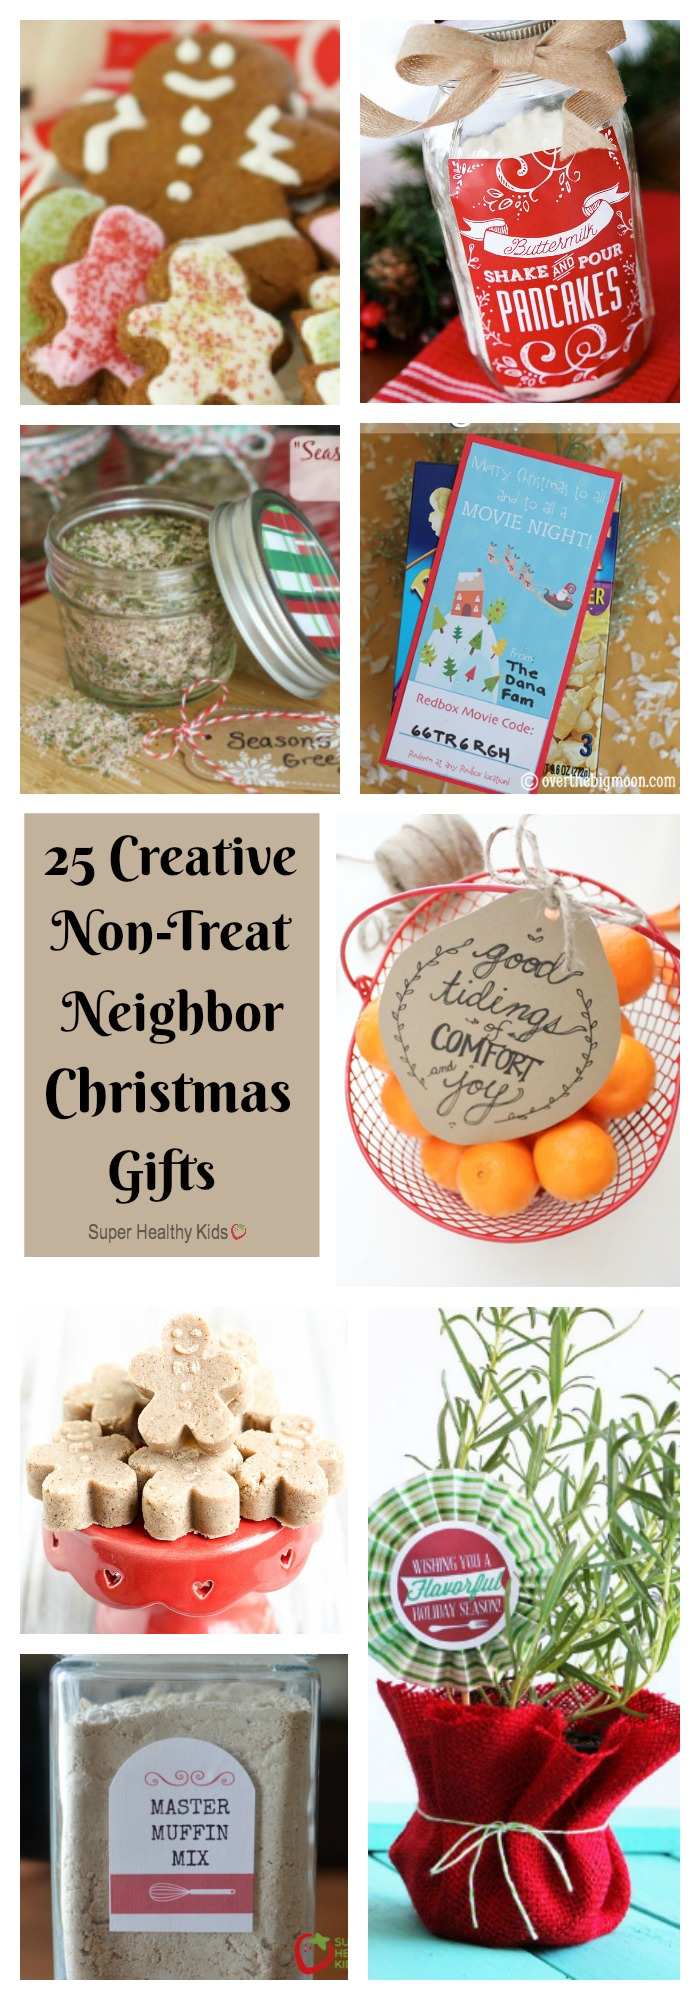 25 Days Of Christmas List 2017 >> 25 Creative Non-Treat Neighbor Christmas Gifts | Healthy Ideas for Kids